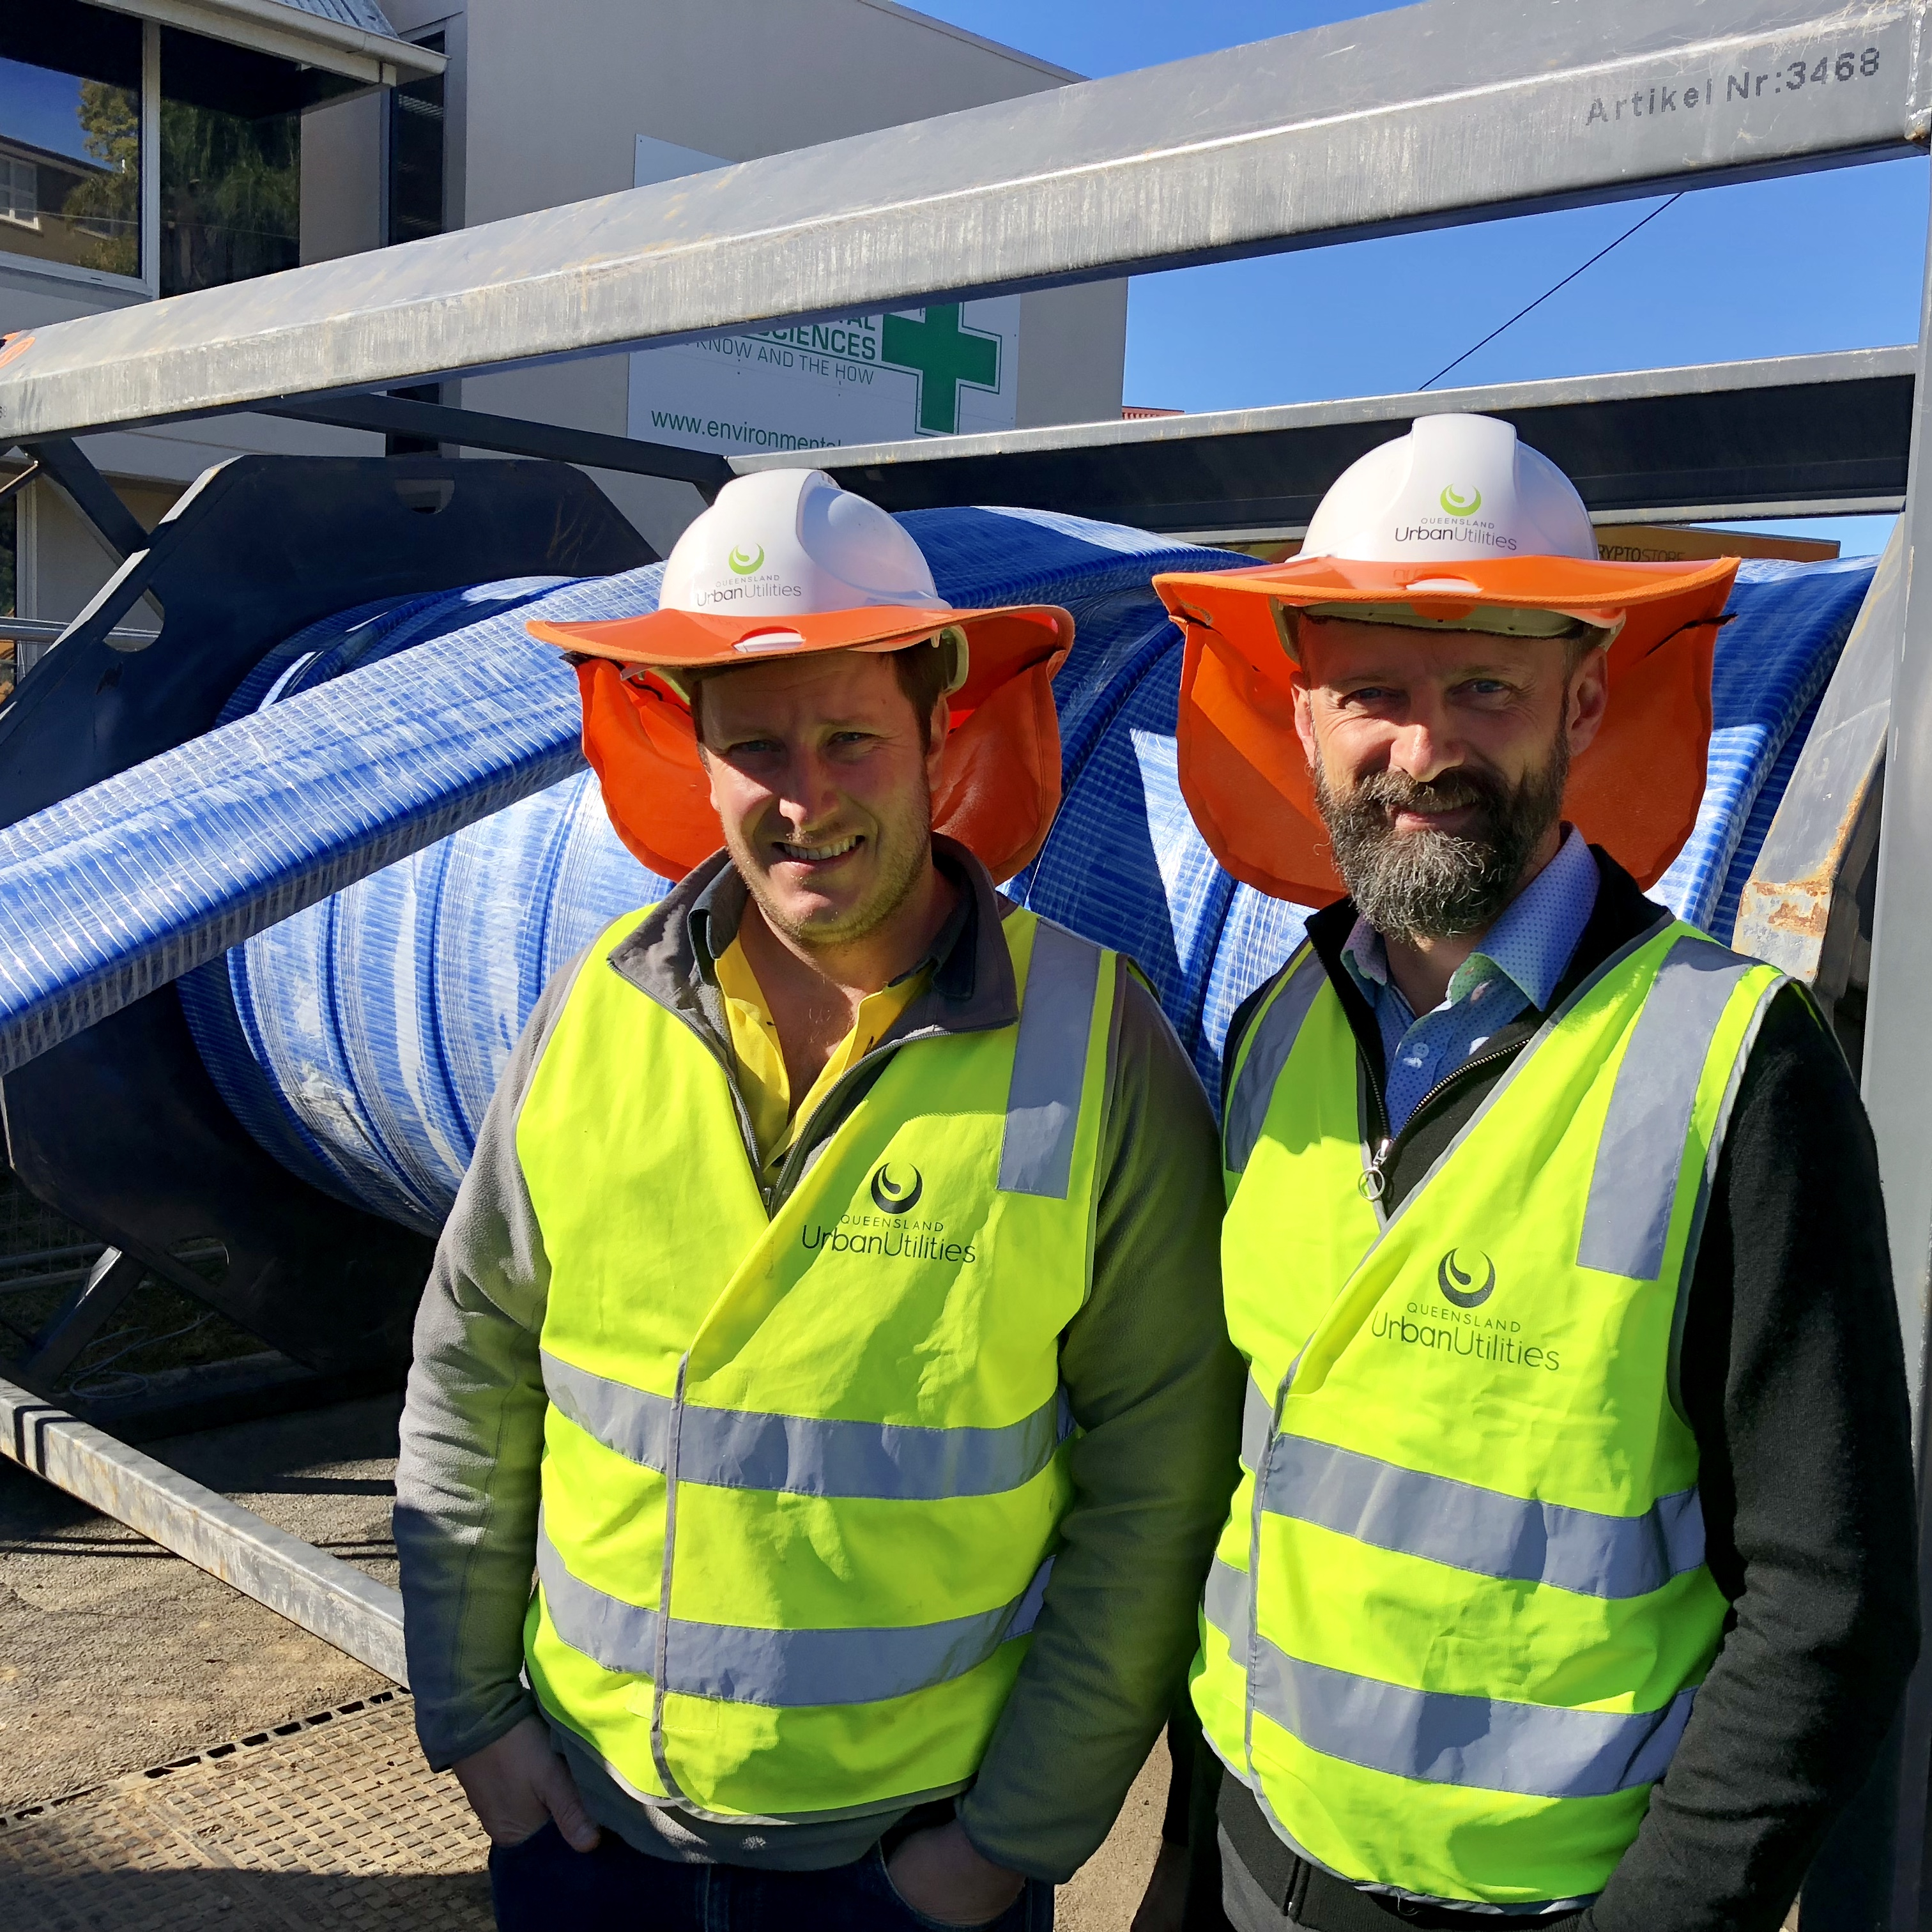 Queensland Urban Utilities embraces innovative pipe relining technology